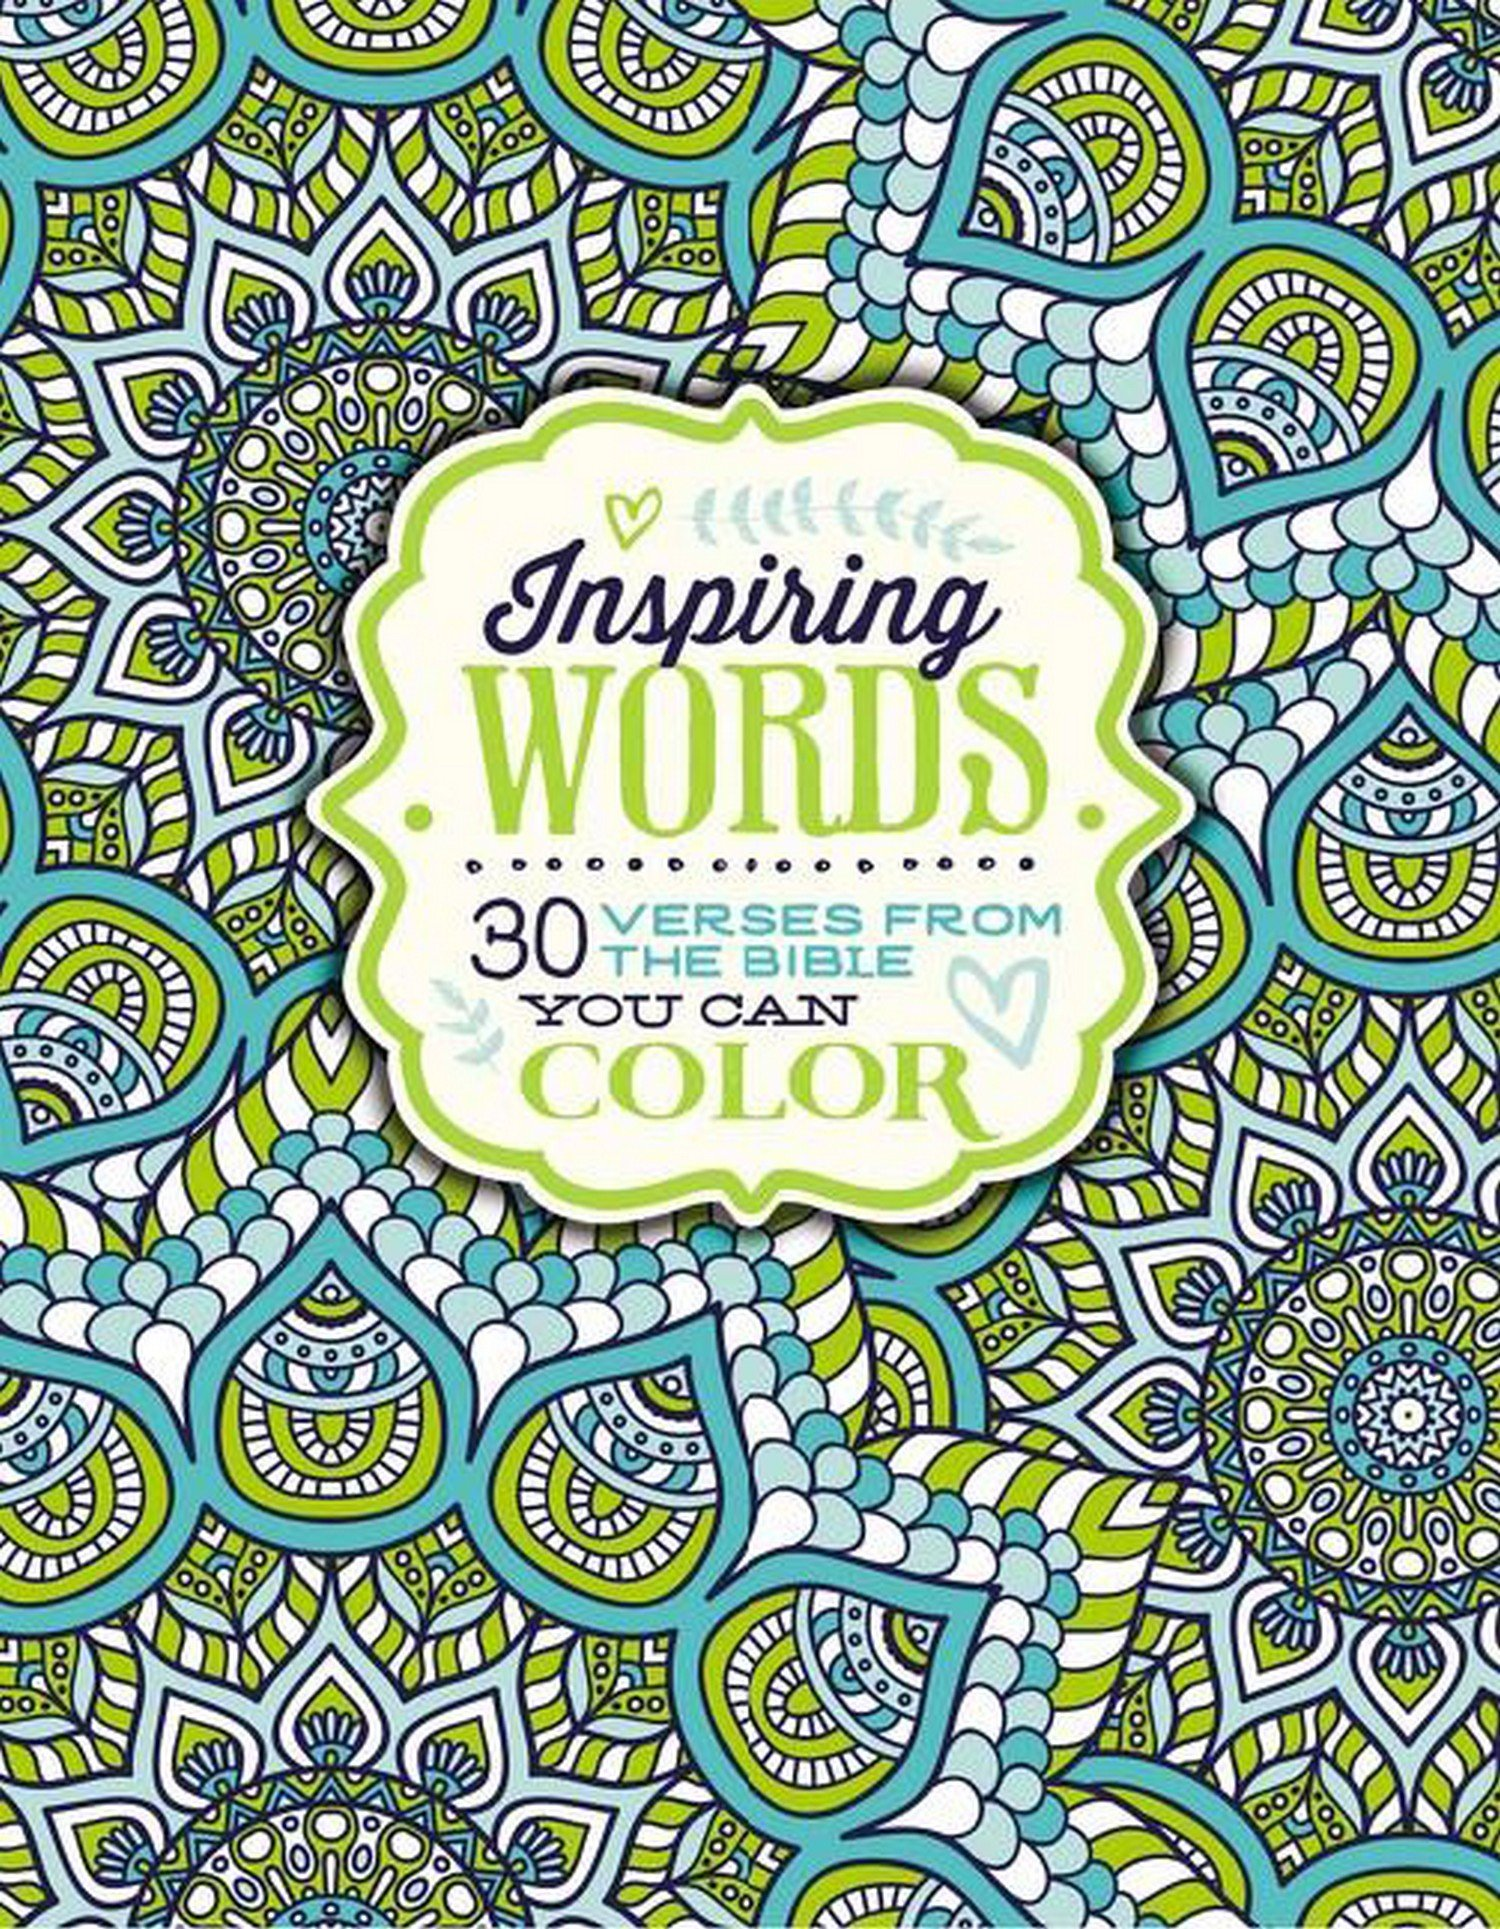 inspiring words coloring book 30 verses from the bible you can color zondervan 9780310757283 amazoncom books